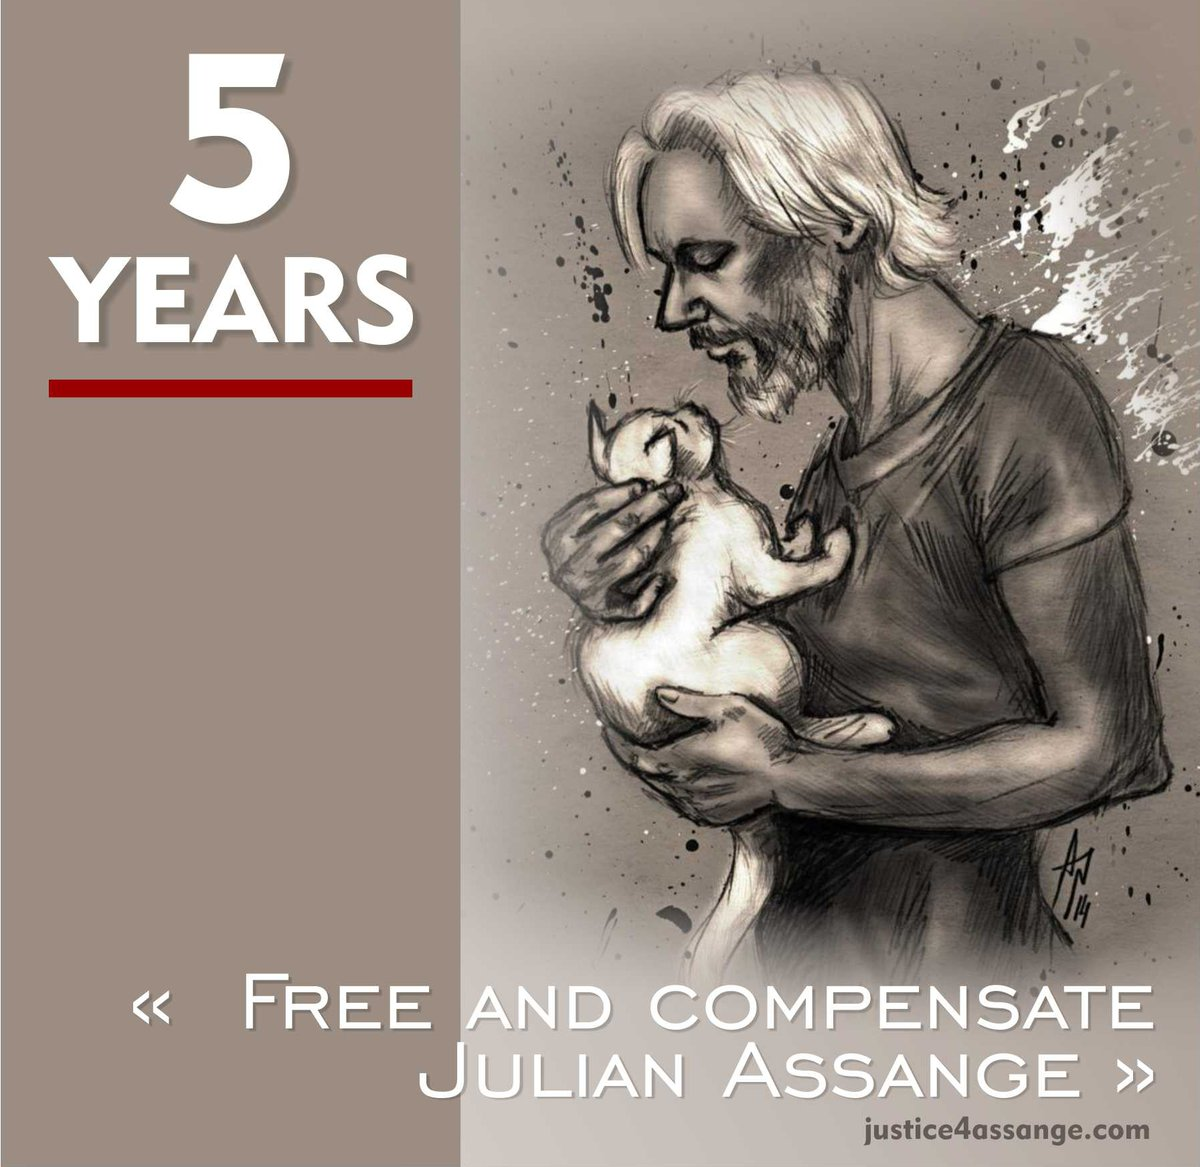 Julian #Assange should walk free!  is detaining him illegally according to 2 UN rulings! , restore Julian&#39;s freedom NOW! #FreeAssangeNOW <br>http://pic.twitter.com/BAZ8CUxRho